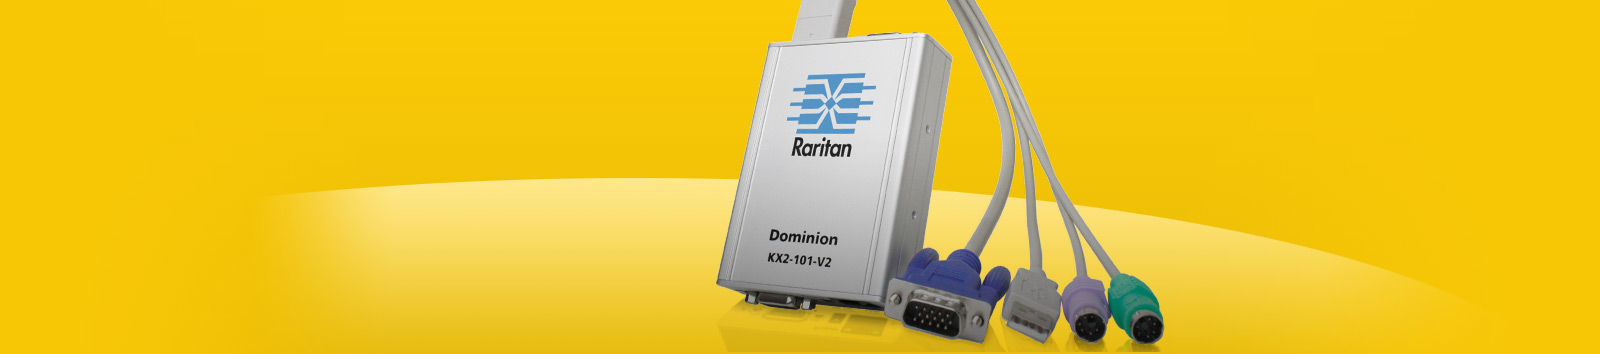 Raritan Dominion DKX2-101-V2 4 User 1 Port KVM Over IP KVM Gateway